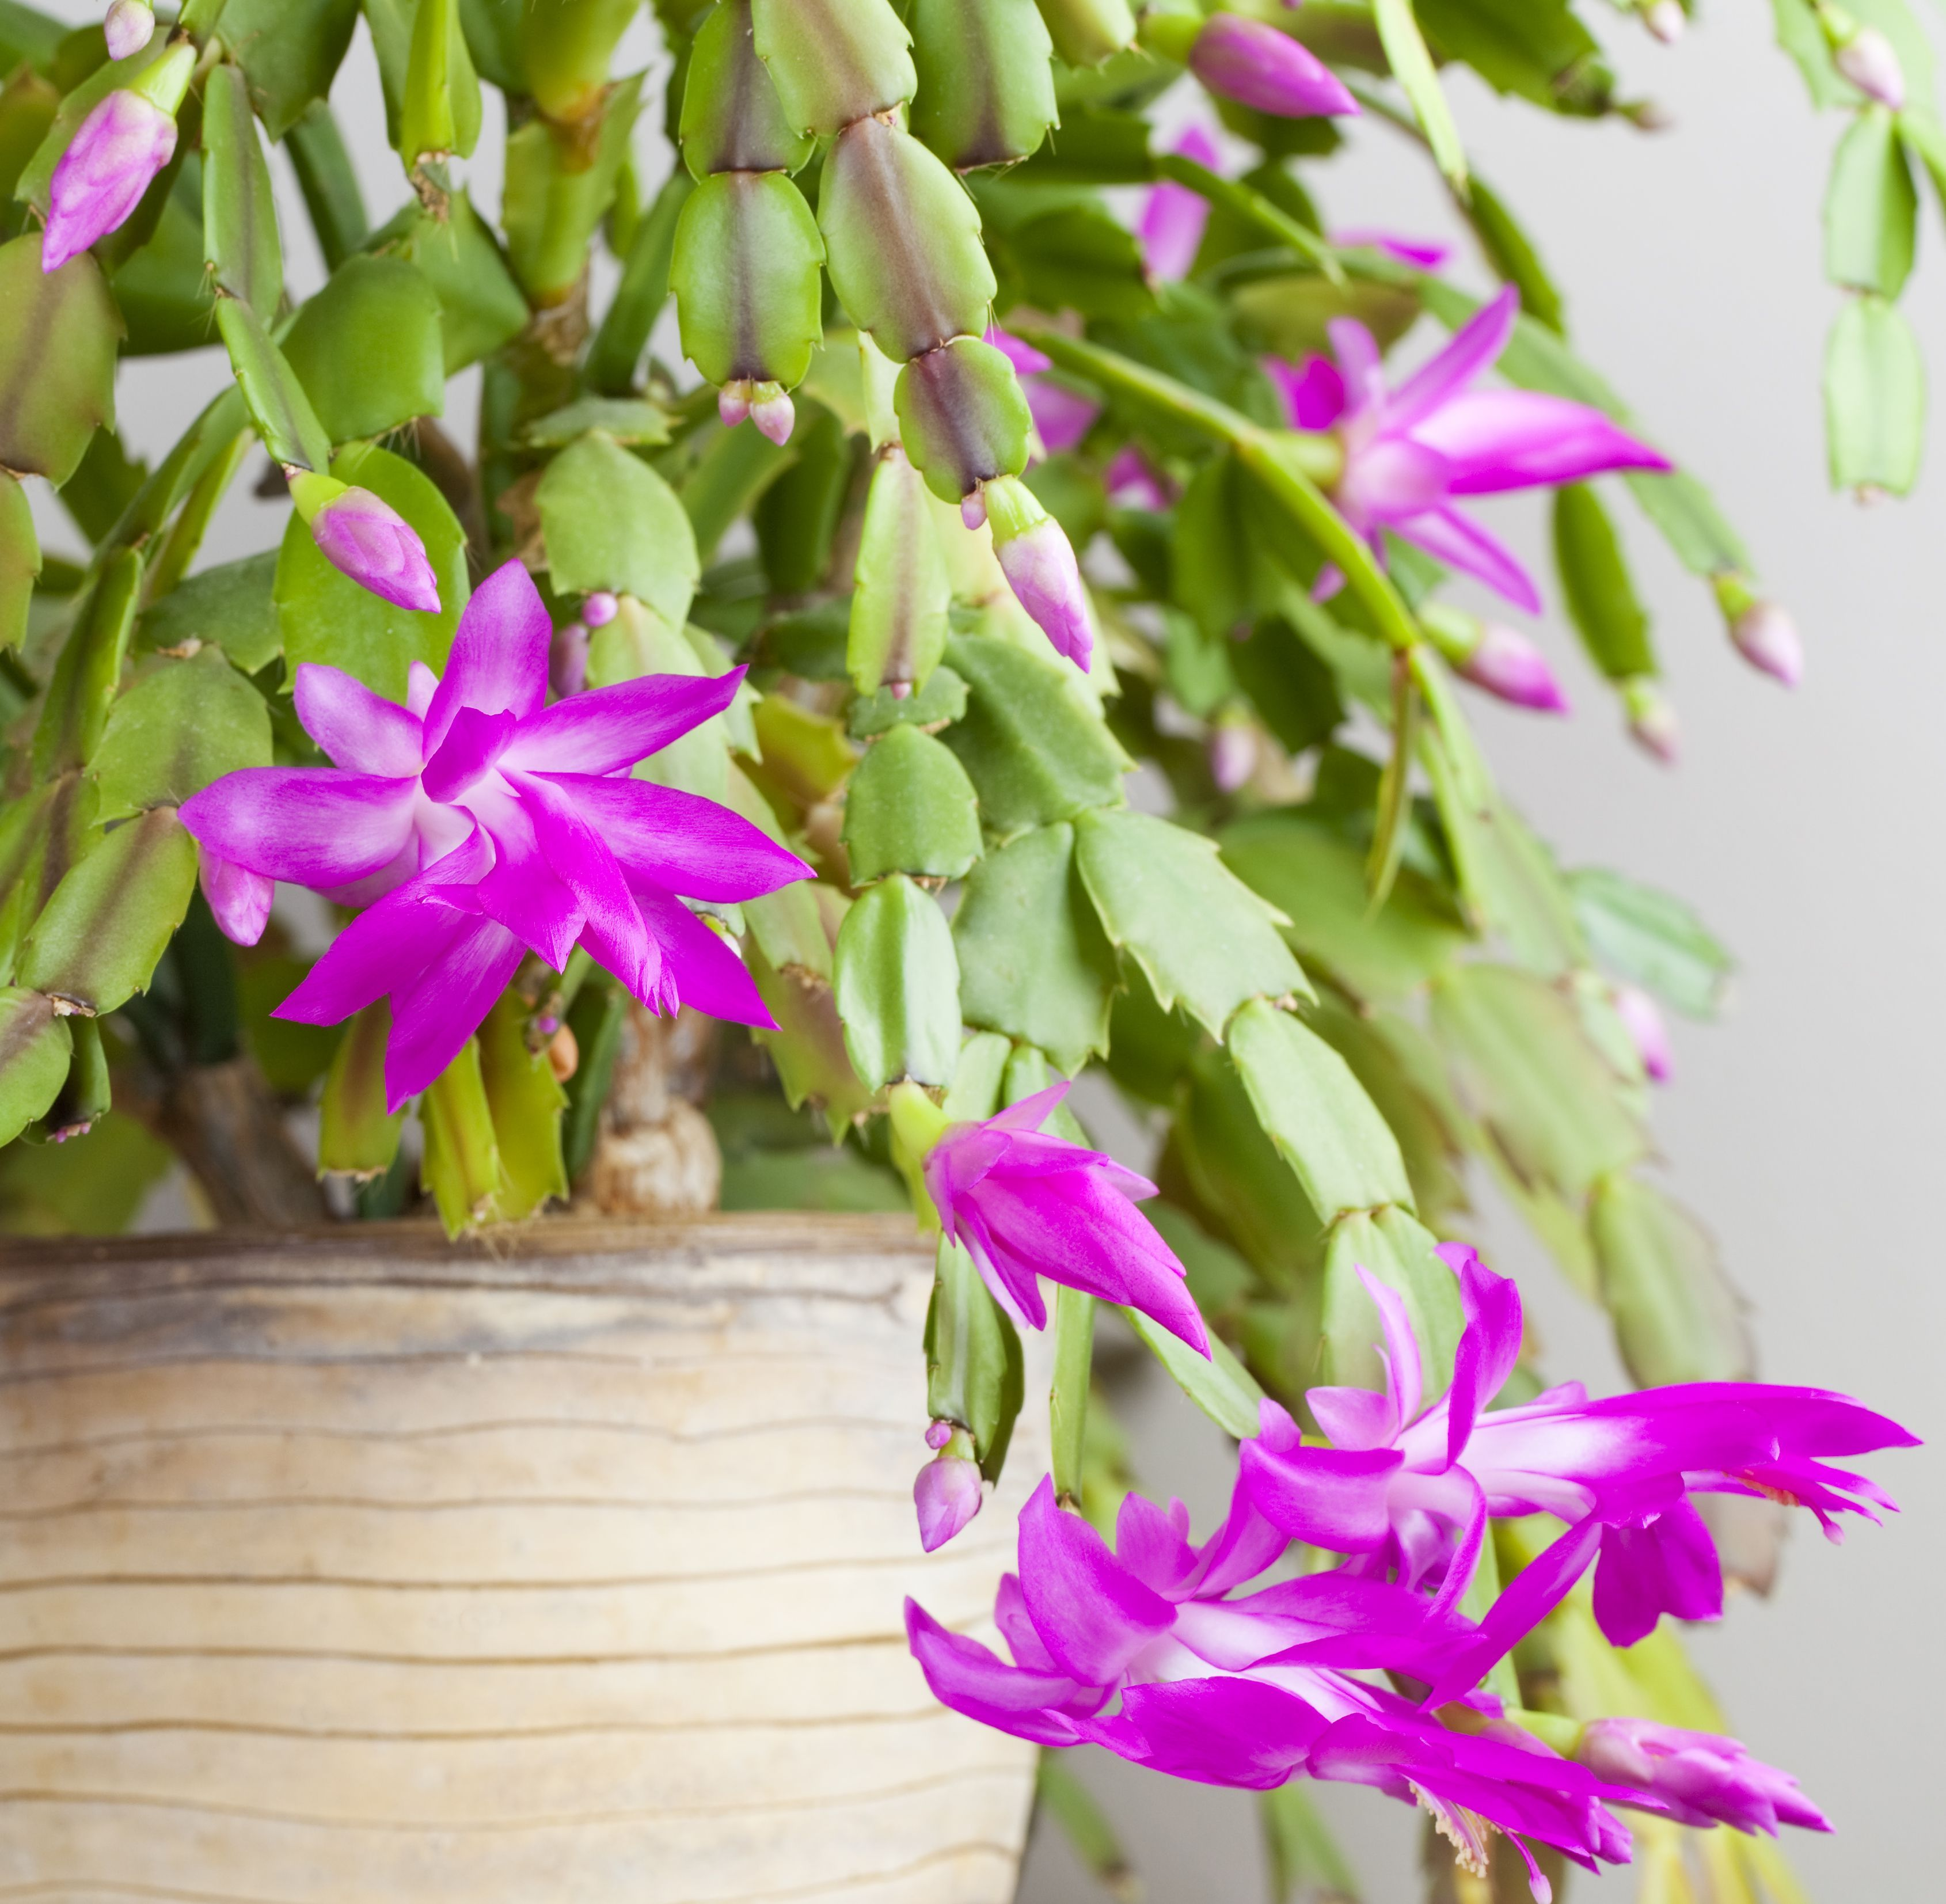 Christmas Cactus on house plants with long green leaves, house plants with bronze leaves, house plants and their names, house plant rubber plant, florida plants with red leaves, house plants with colorful leaves, poisonous plants with purple leaves, purple foliage plants with leaves, perennial plants with purple leaves, house with red flowers, house plants with dark red leaves, wandering jew with fuzzy leaves, house plants with small leaves, purple house plant fuzzy leaves, olive tree green leaves, house plant purple heart, tomato plants with purple leaves, house plants with light green leaves, house plants with shiny leaves, house plants with waxy red blooms,